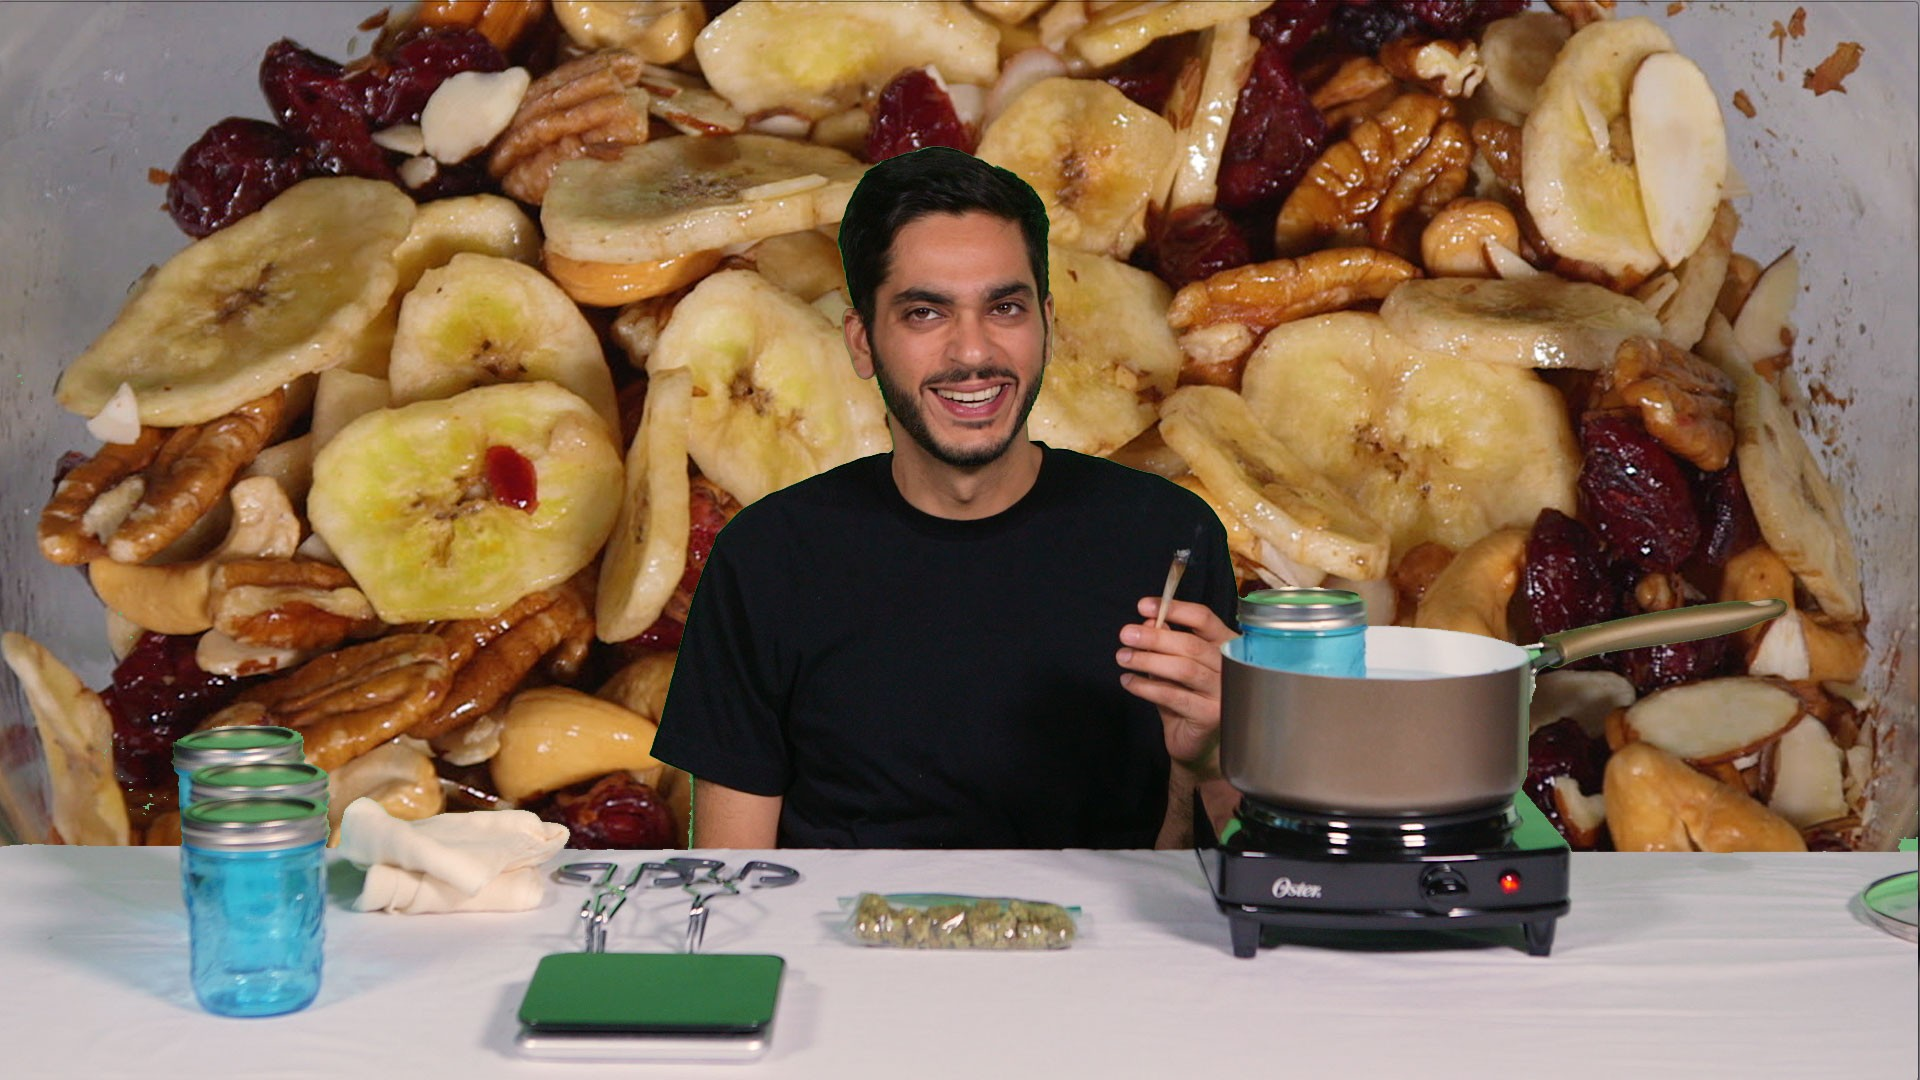 How to Make Weed-Infused Trail Mix